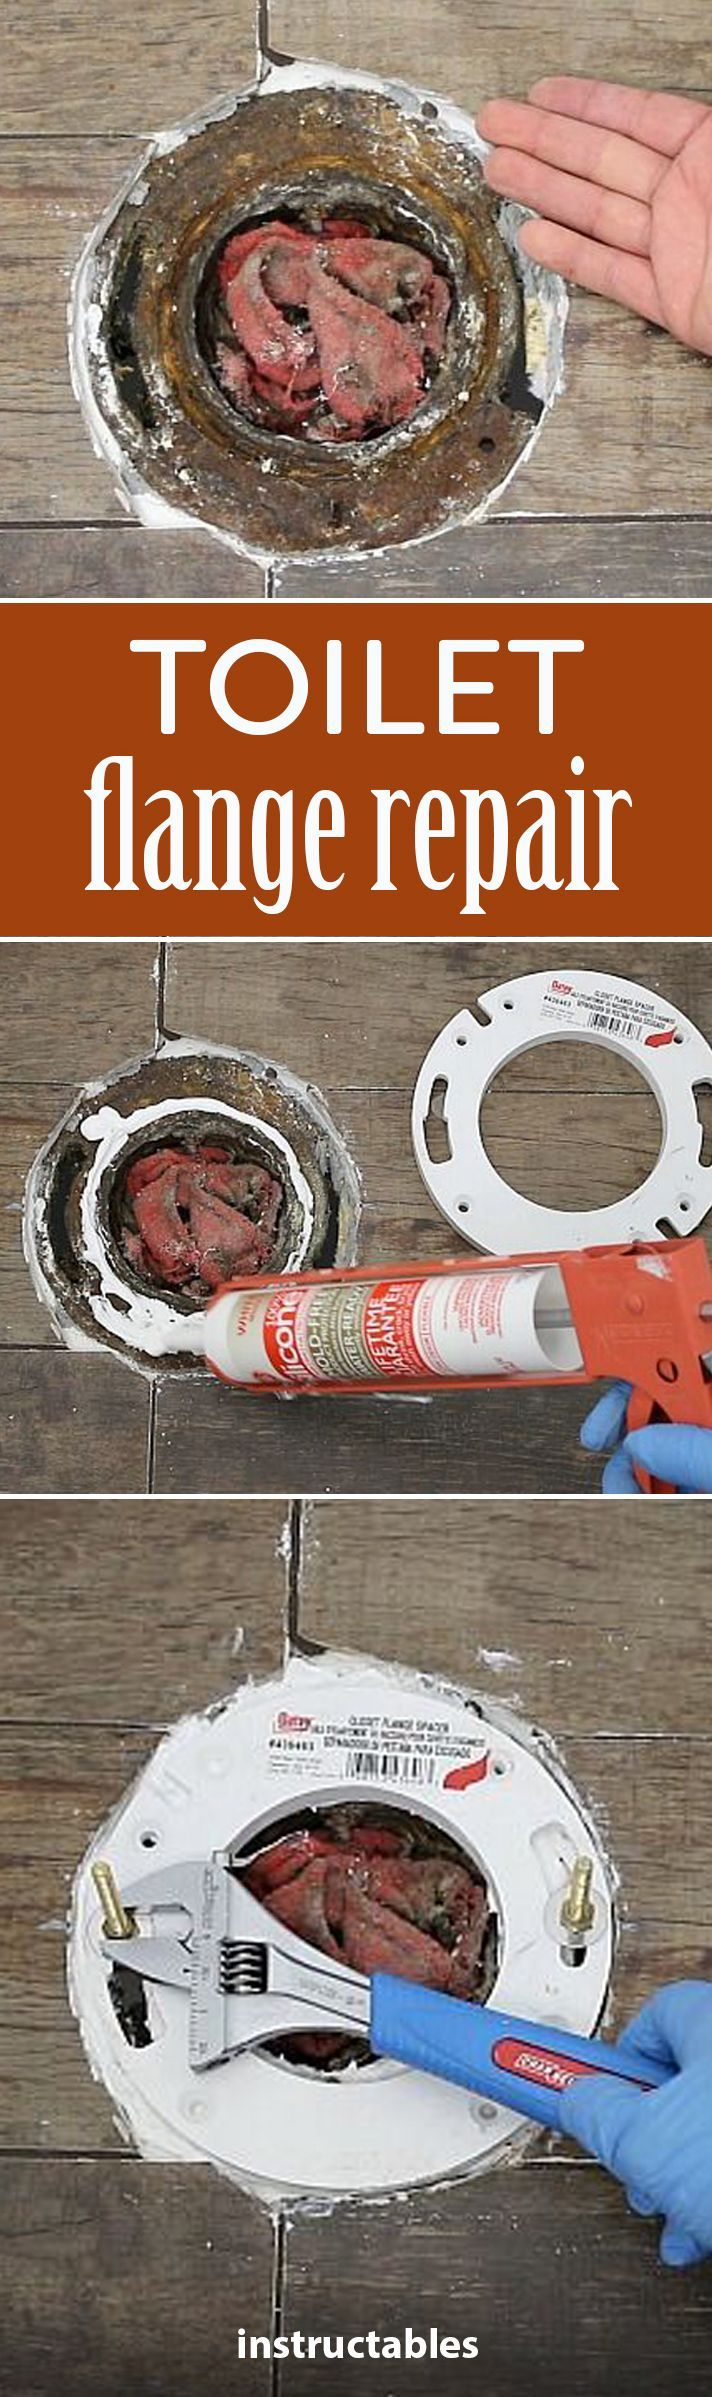 How to Repair a Toilet Flange Using a Toilet Flange Extender — Great Step-by-Step Tutorial